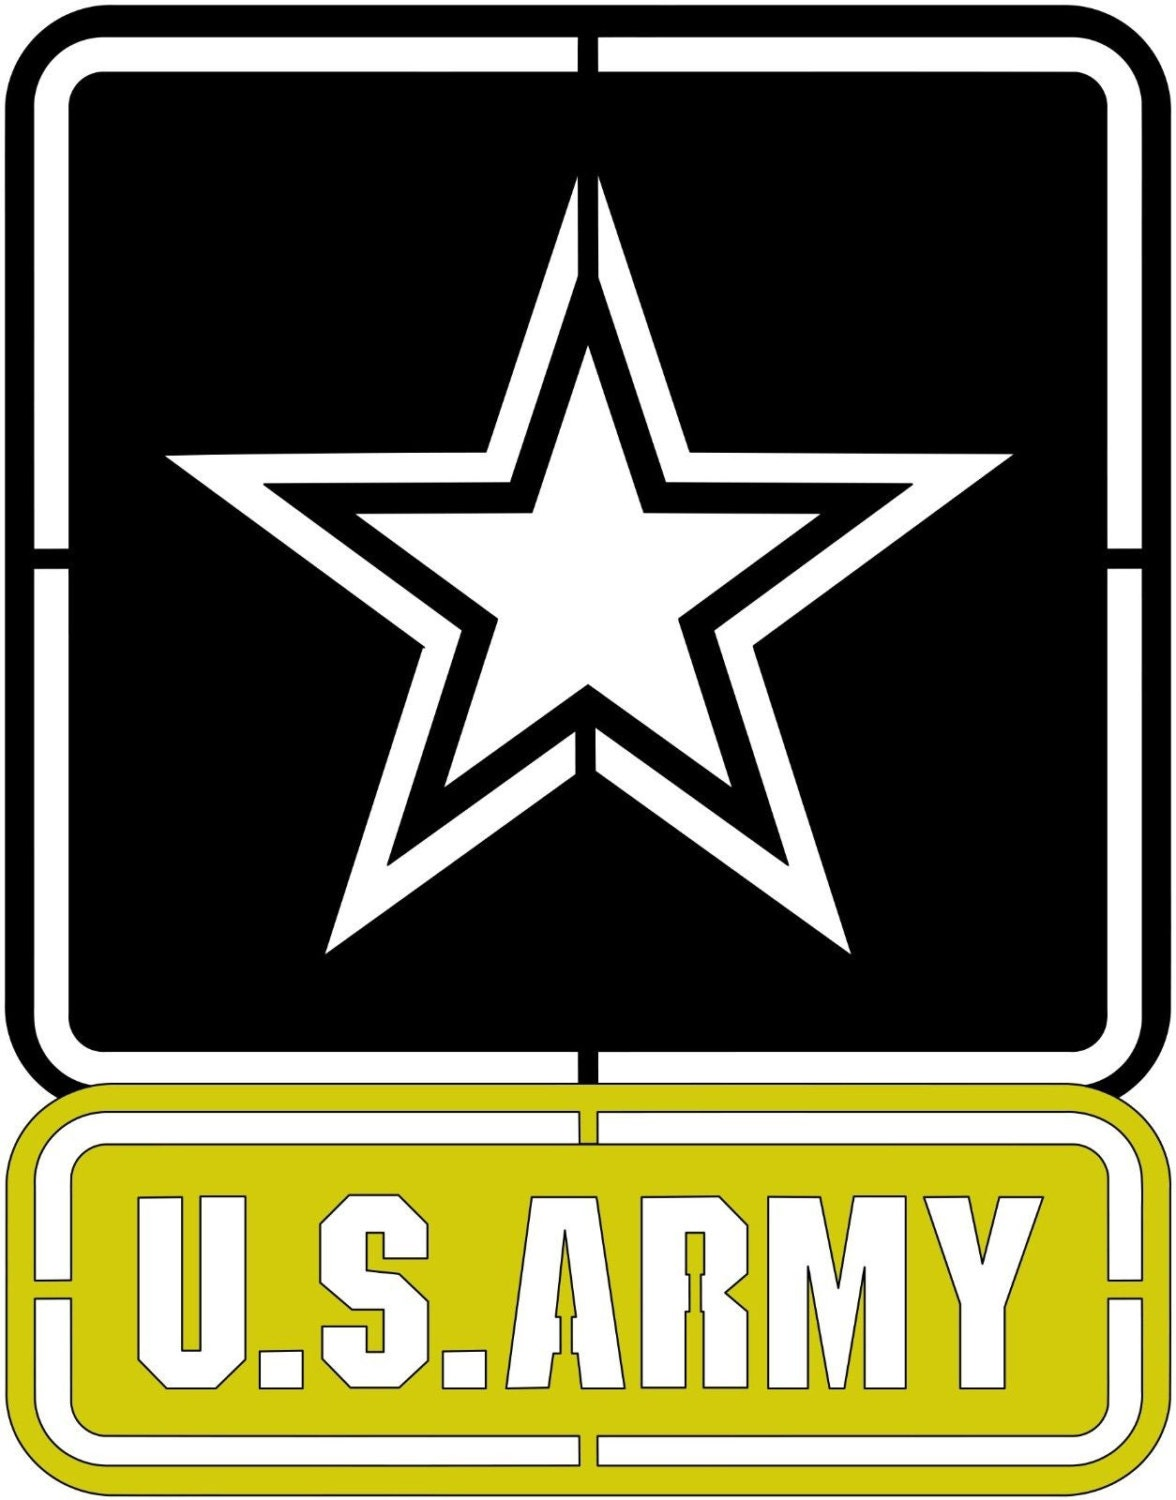 Us Army Sign Metal Wall Art Decor By Cre8ivemetaldesigns. Periodontal Diseases Signs. Contruction Signs. Striped Signs. Black Neck Signs. Terrible Signs. Flower Crown Signs Of Stroke. Bladder Infection Signs. Endorphins Signs